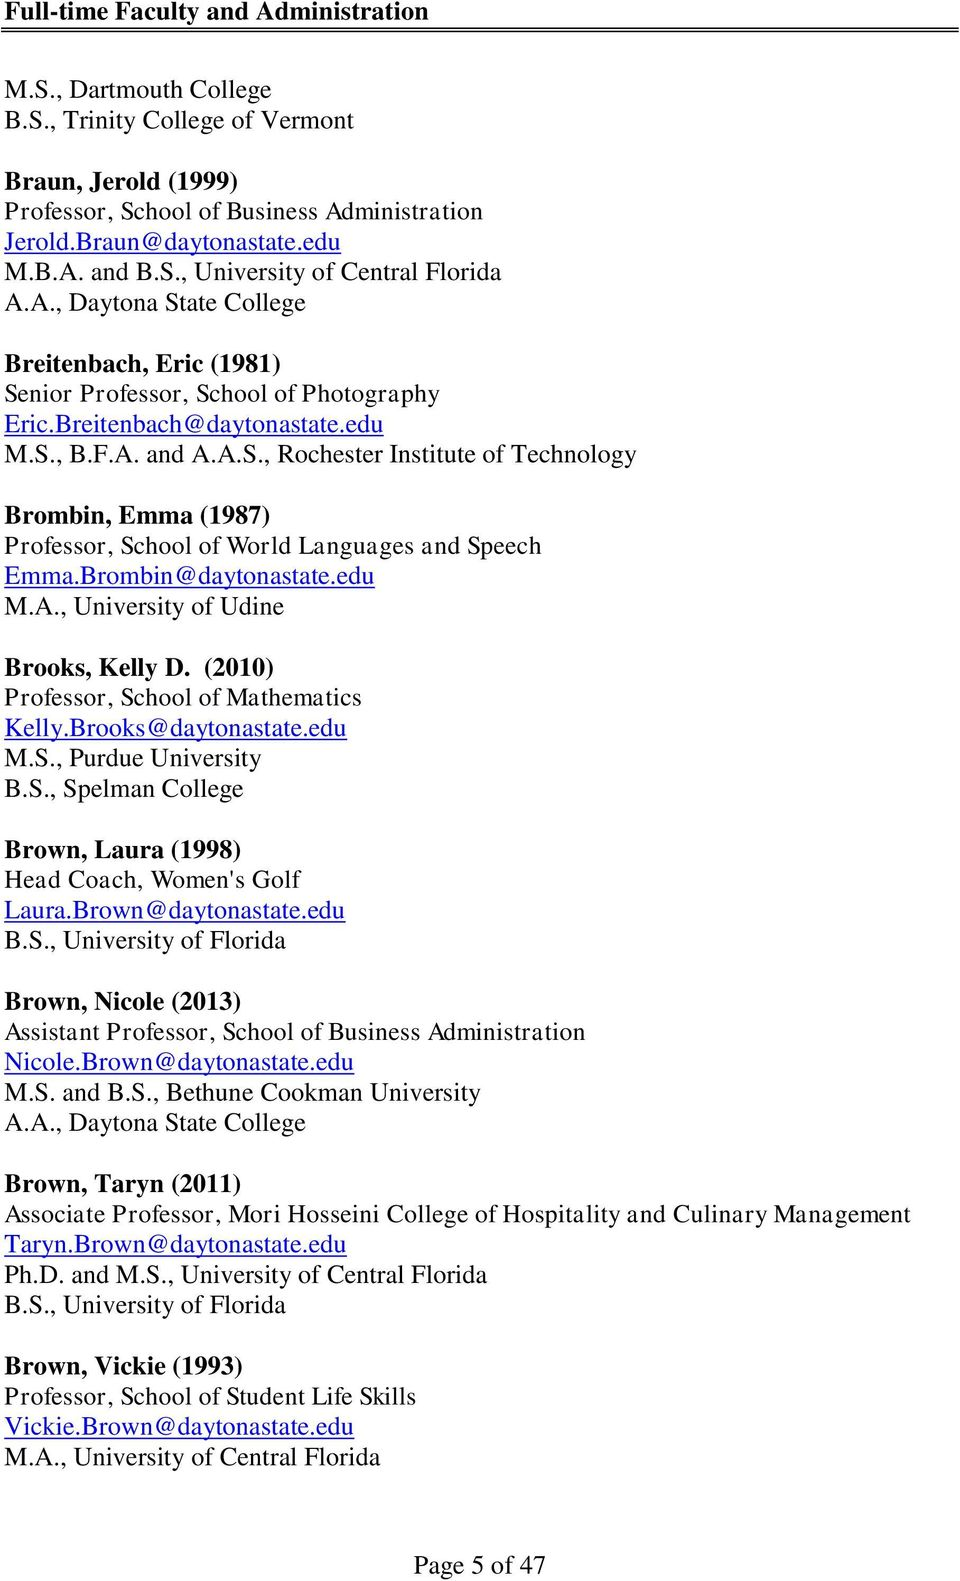 Full-time Faculty and Administration - PDF